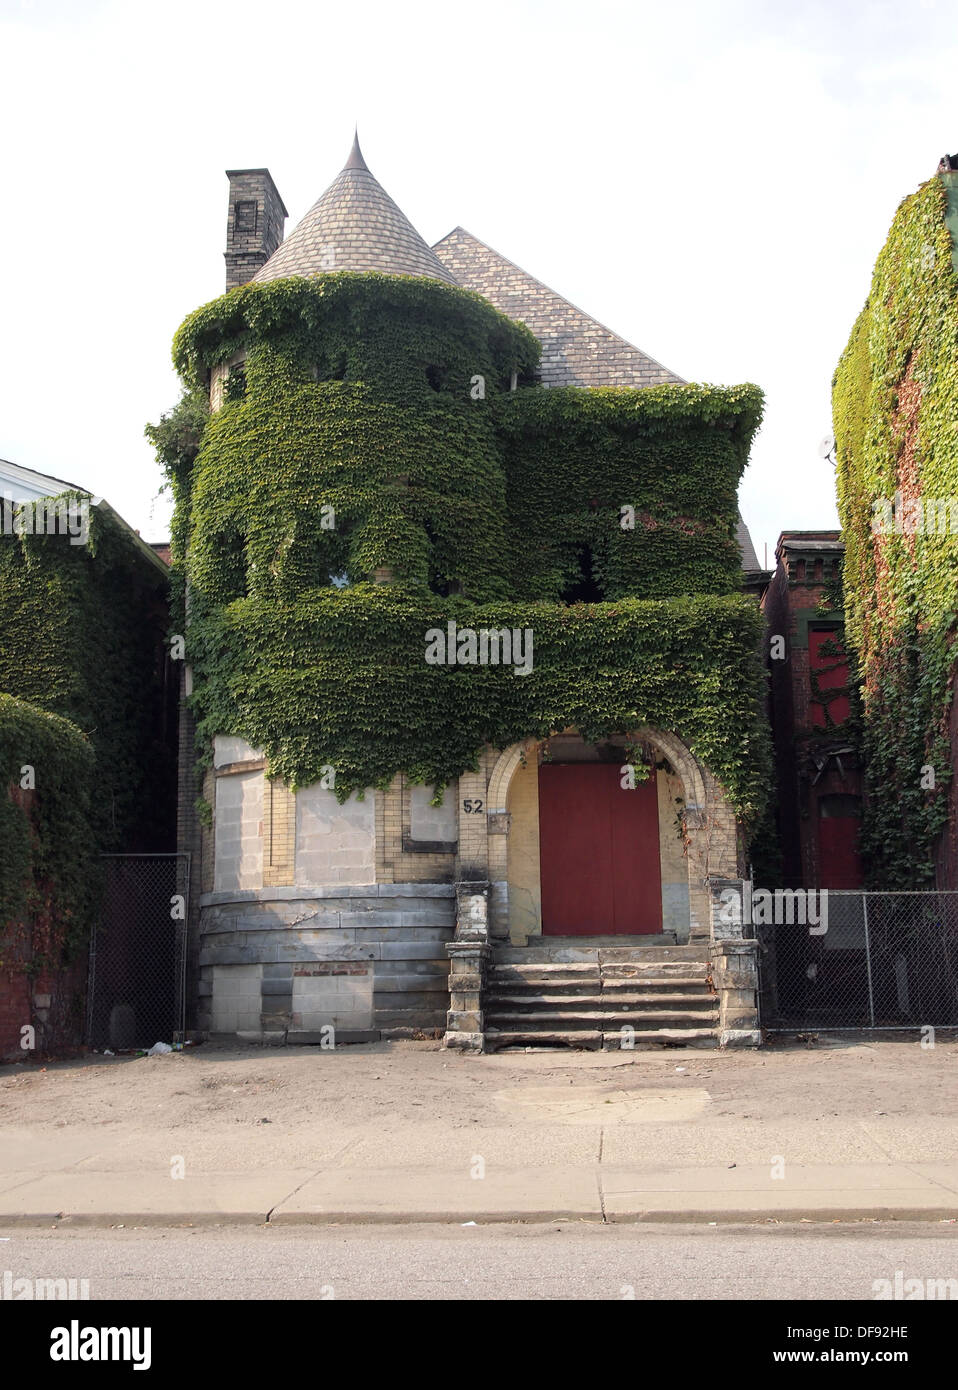 Derelict Buildings Covered In Ivy Detroit Michigan USA